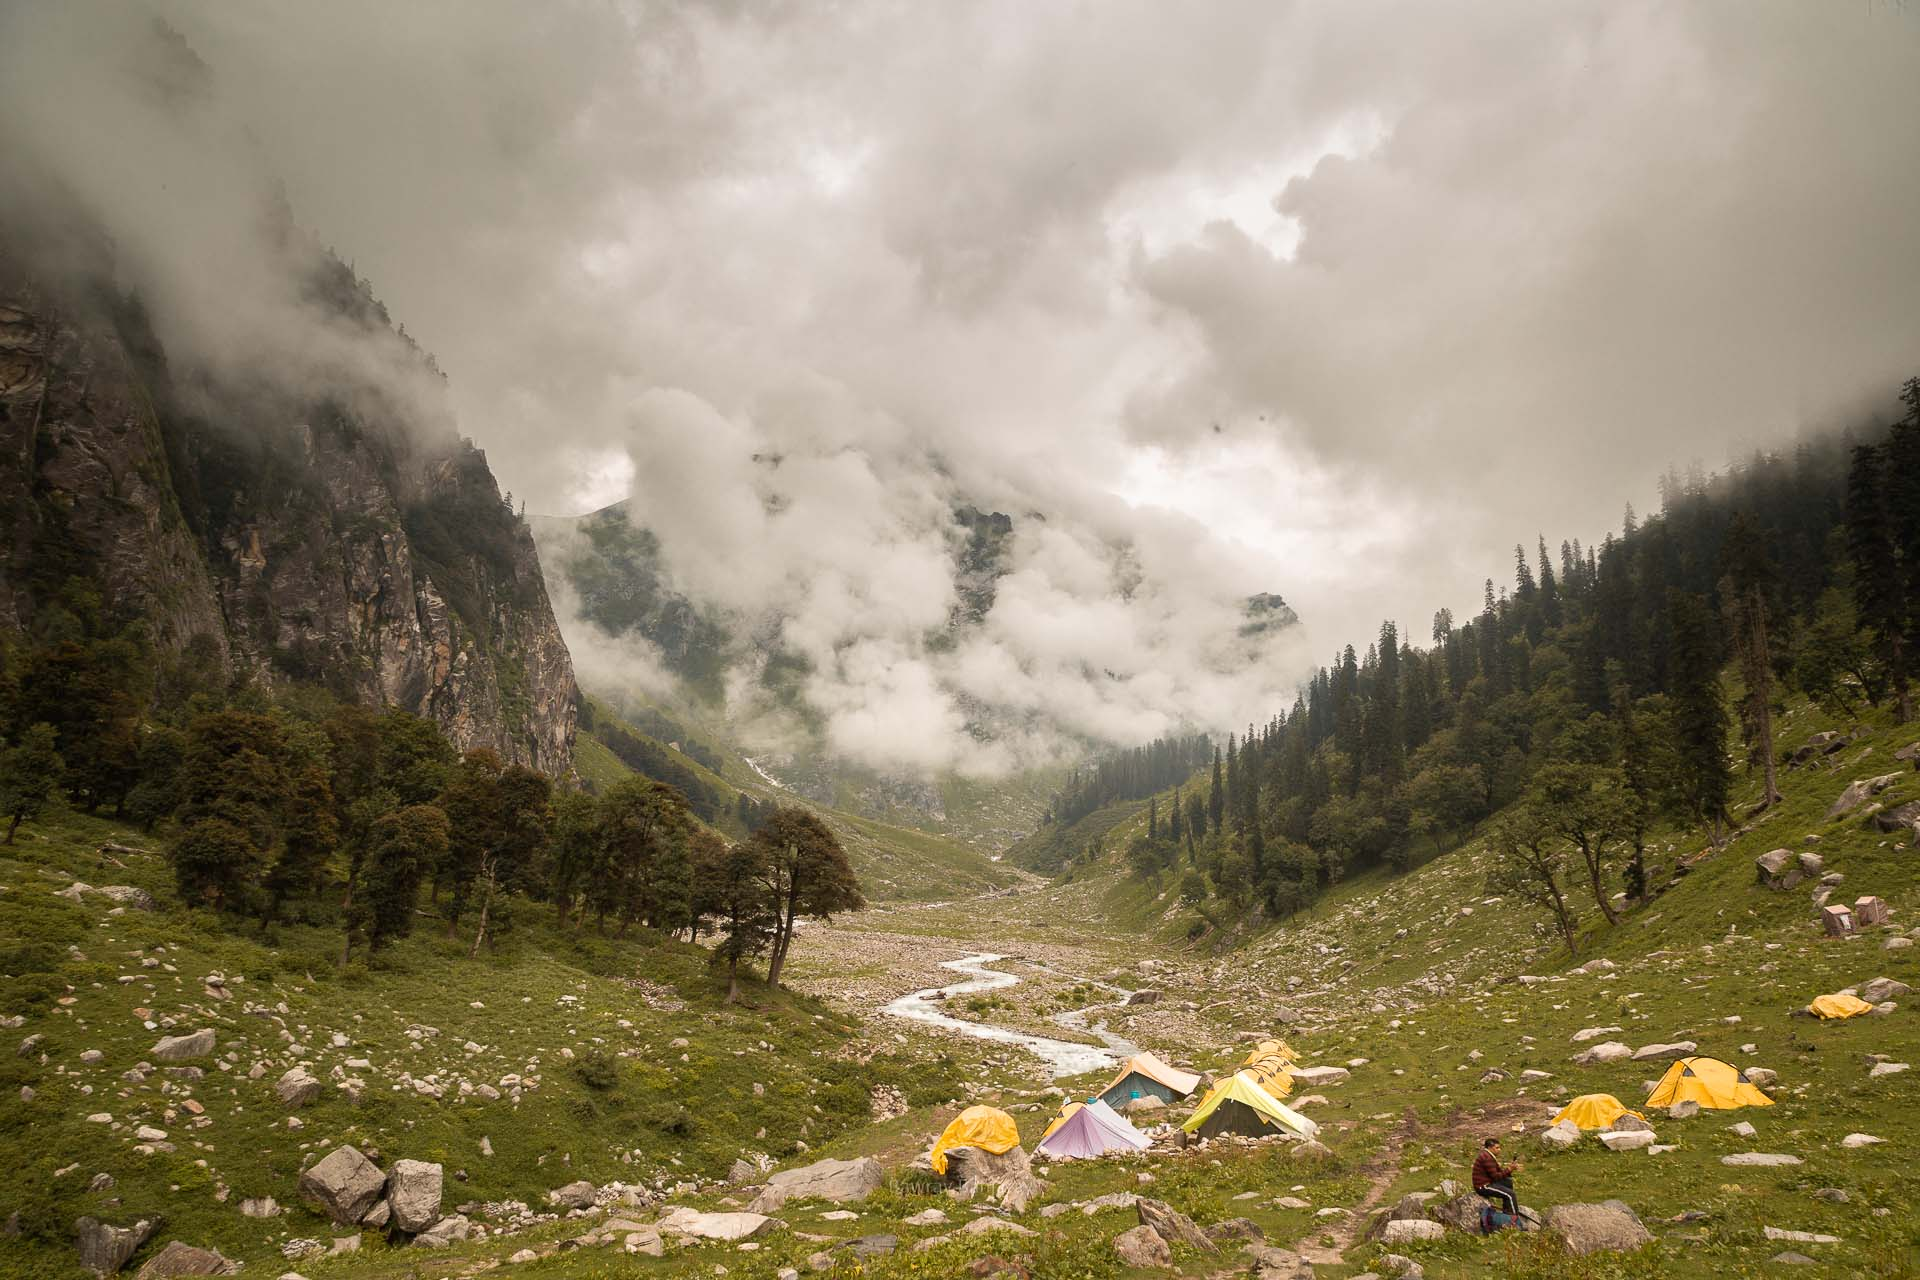 first base camp at Hampta Pass trek